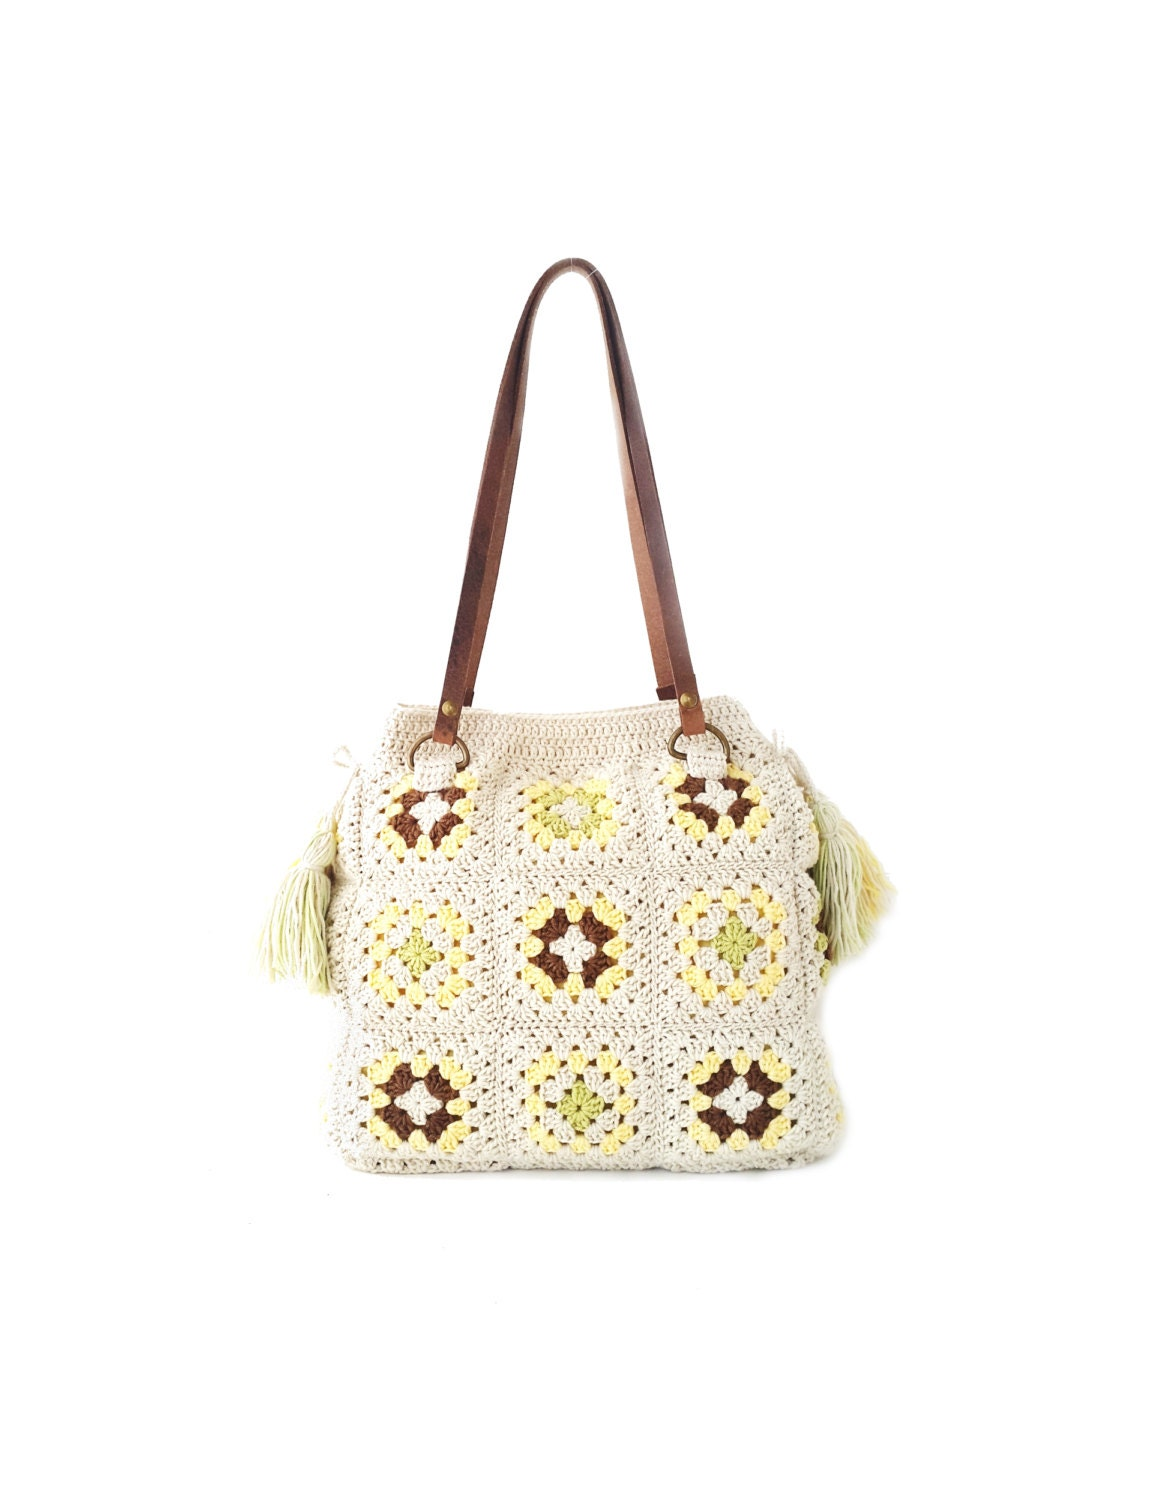 Cream crochet bag with tassels real leather handles by zolayka